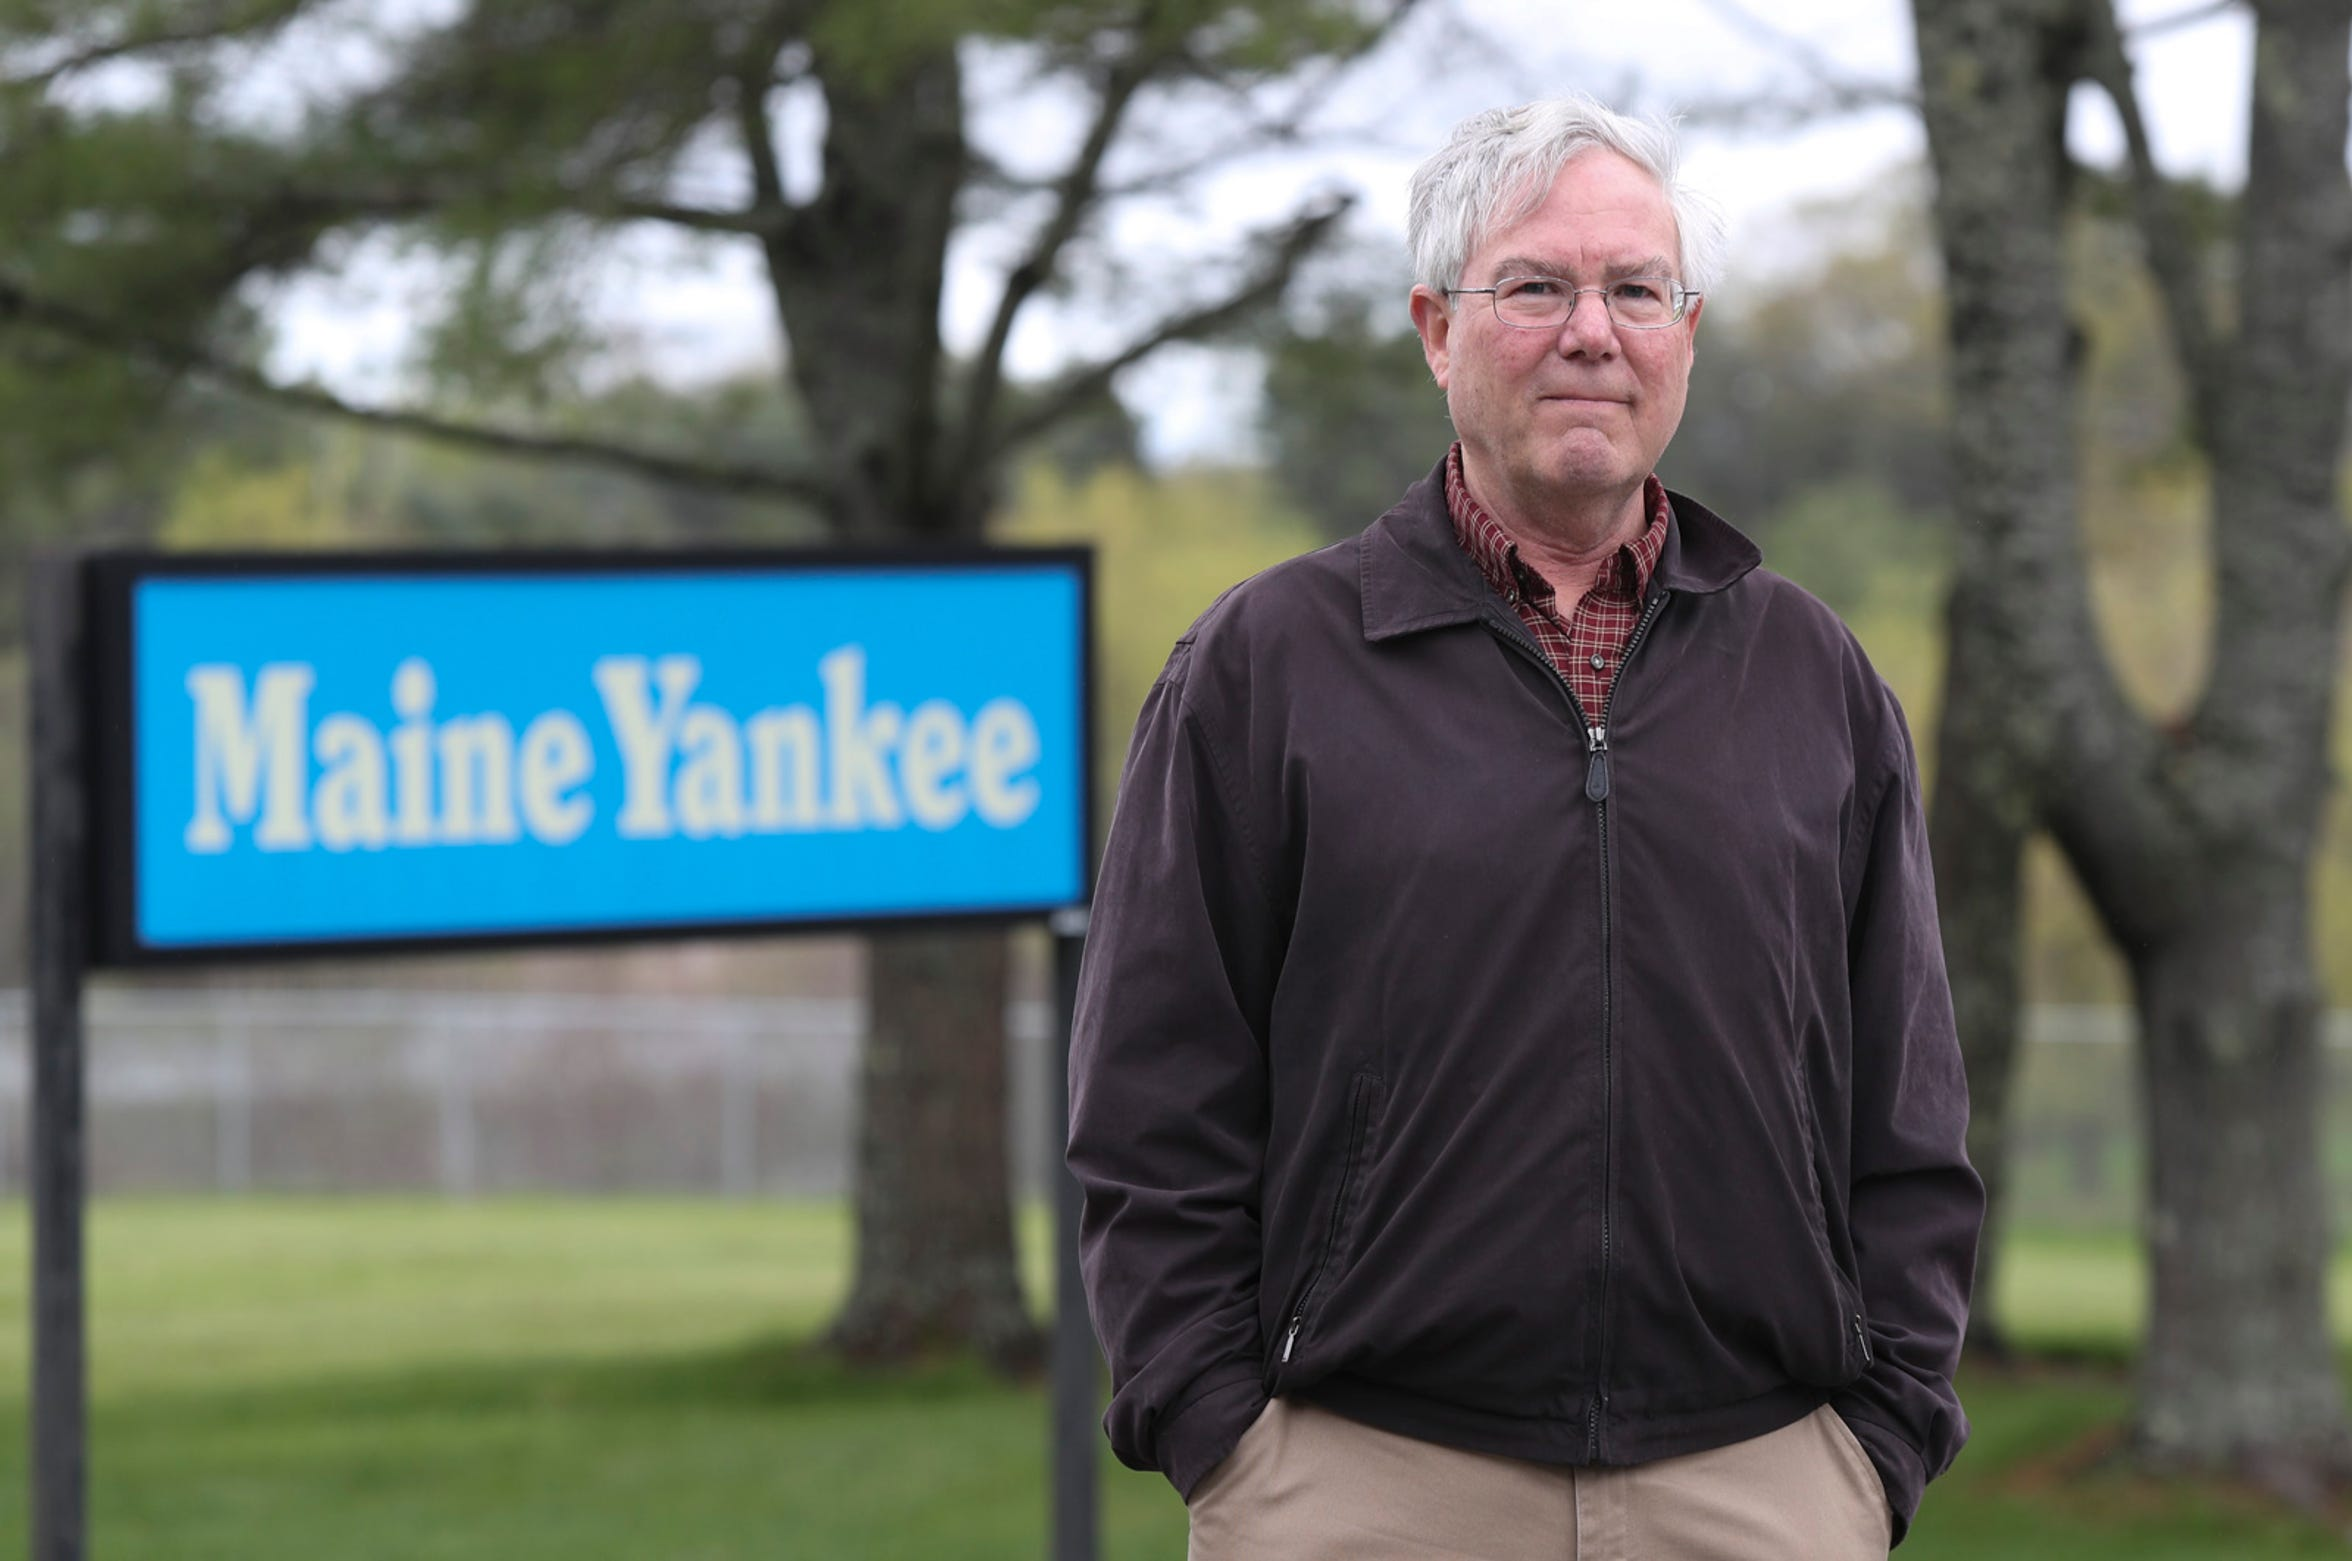 Eric Howes, director of public affairs for  Maine Yankee, photographed outside the  Maine Yankee property in Wiscasset, Maine on Friday, May 24, 2019.